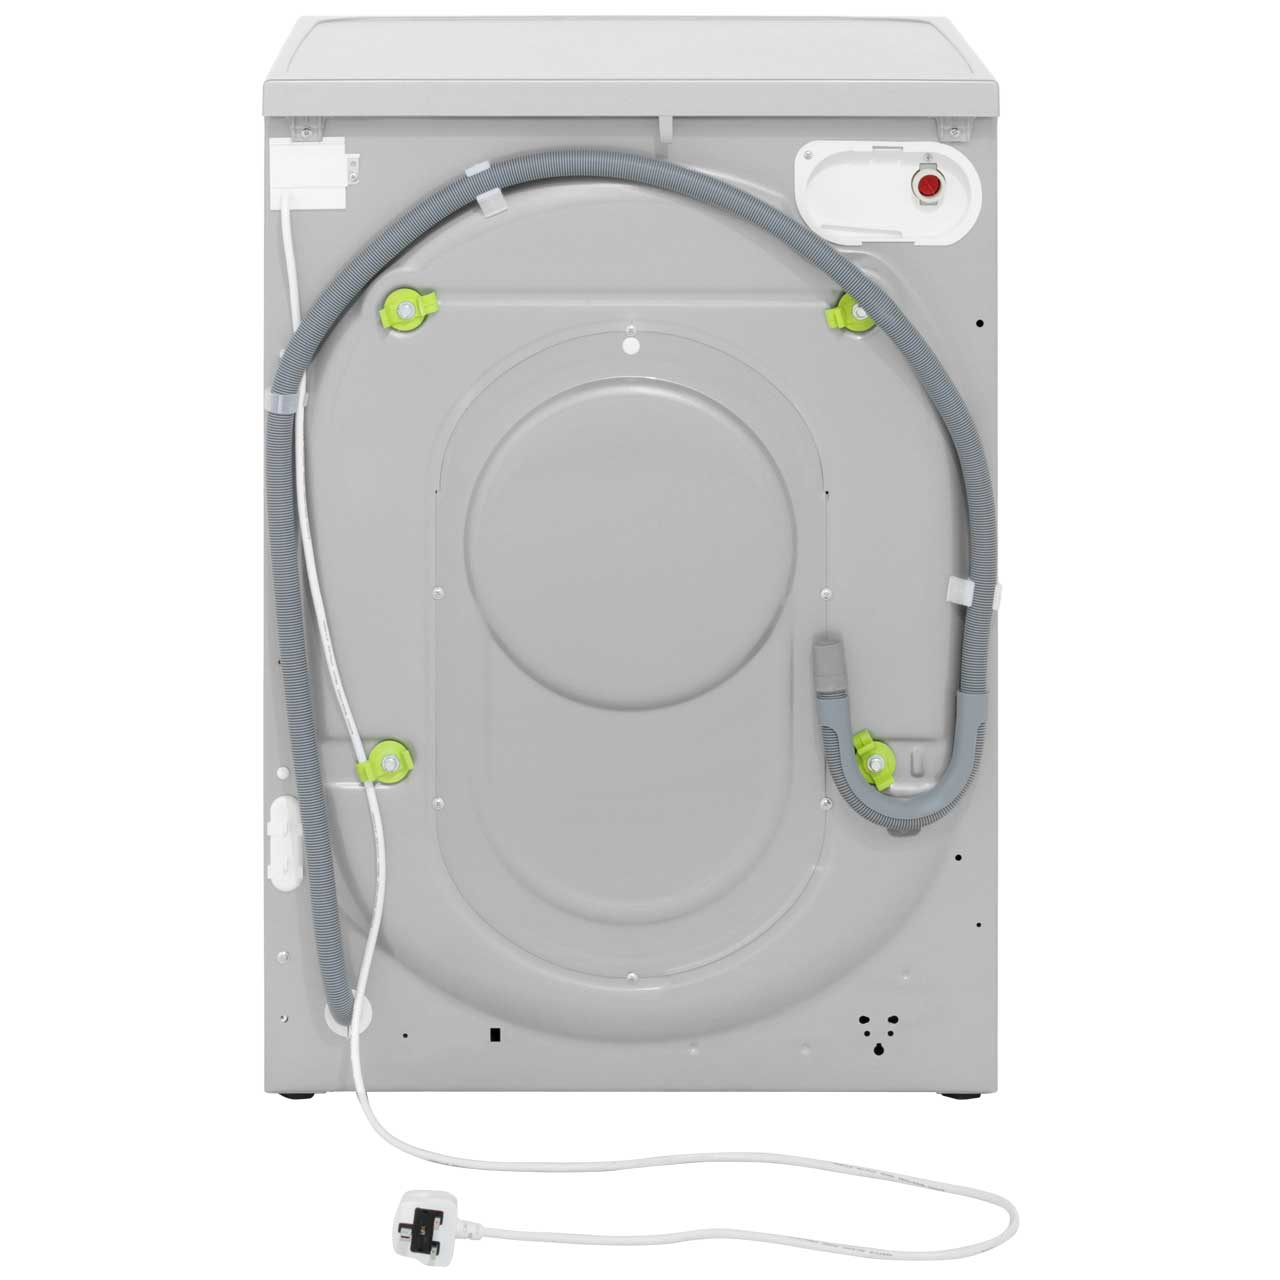 Indesit Iwdc 6125 Indesit Iwdc6125s Eco Time Free Standing 6kg Washer Dryer